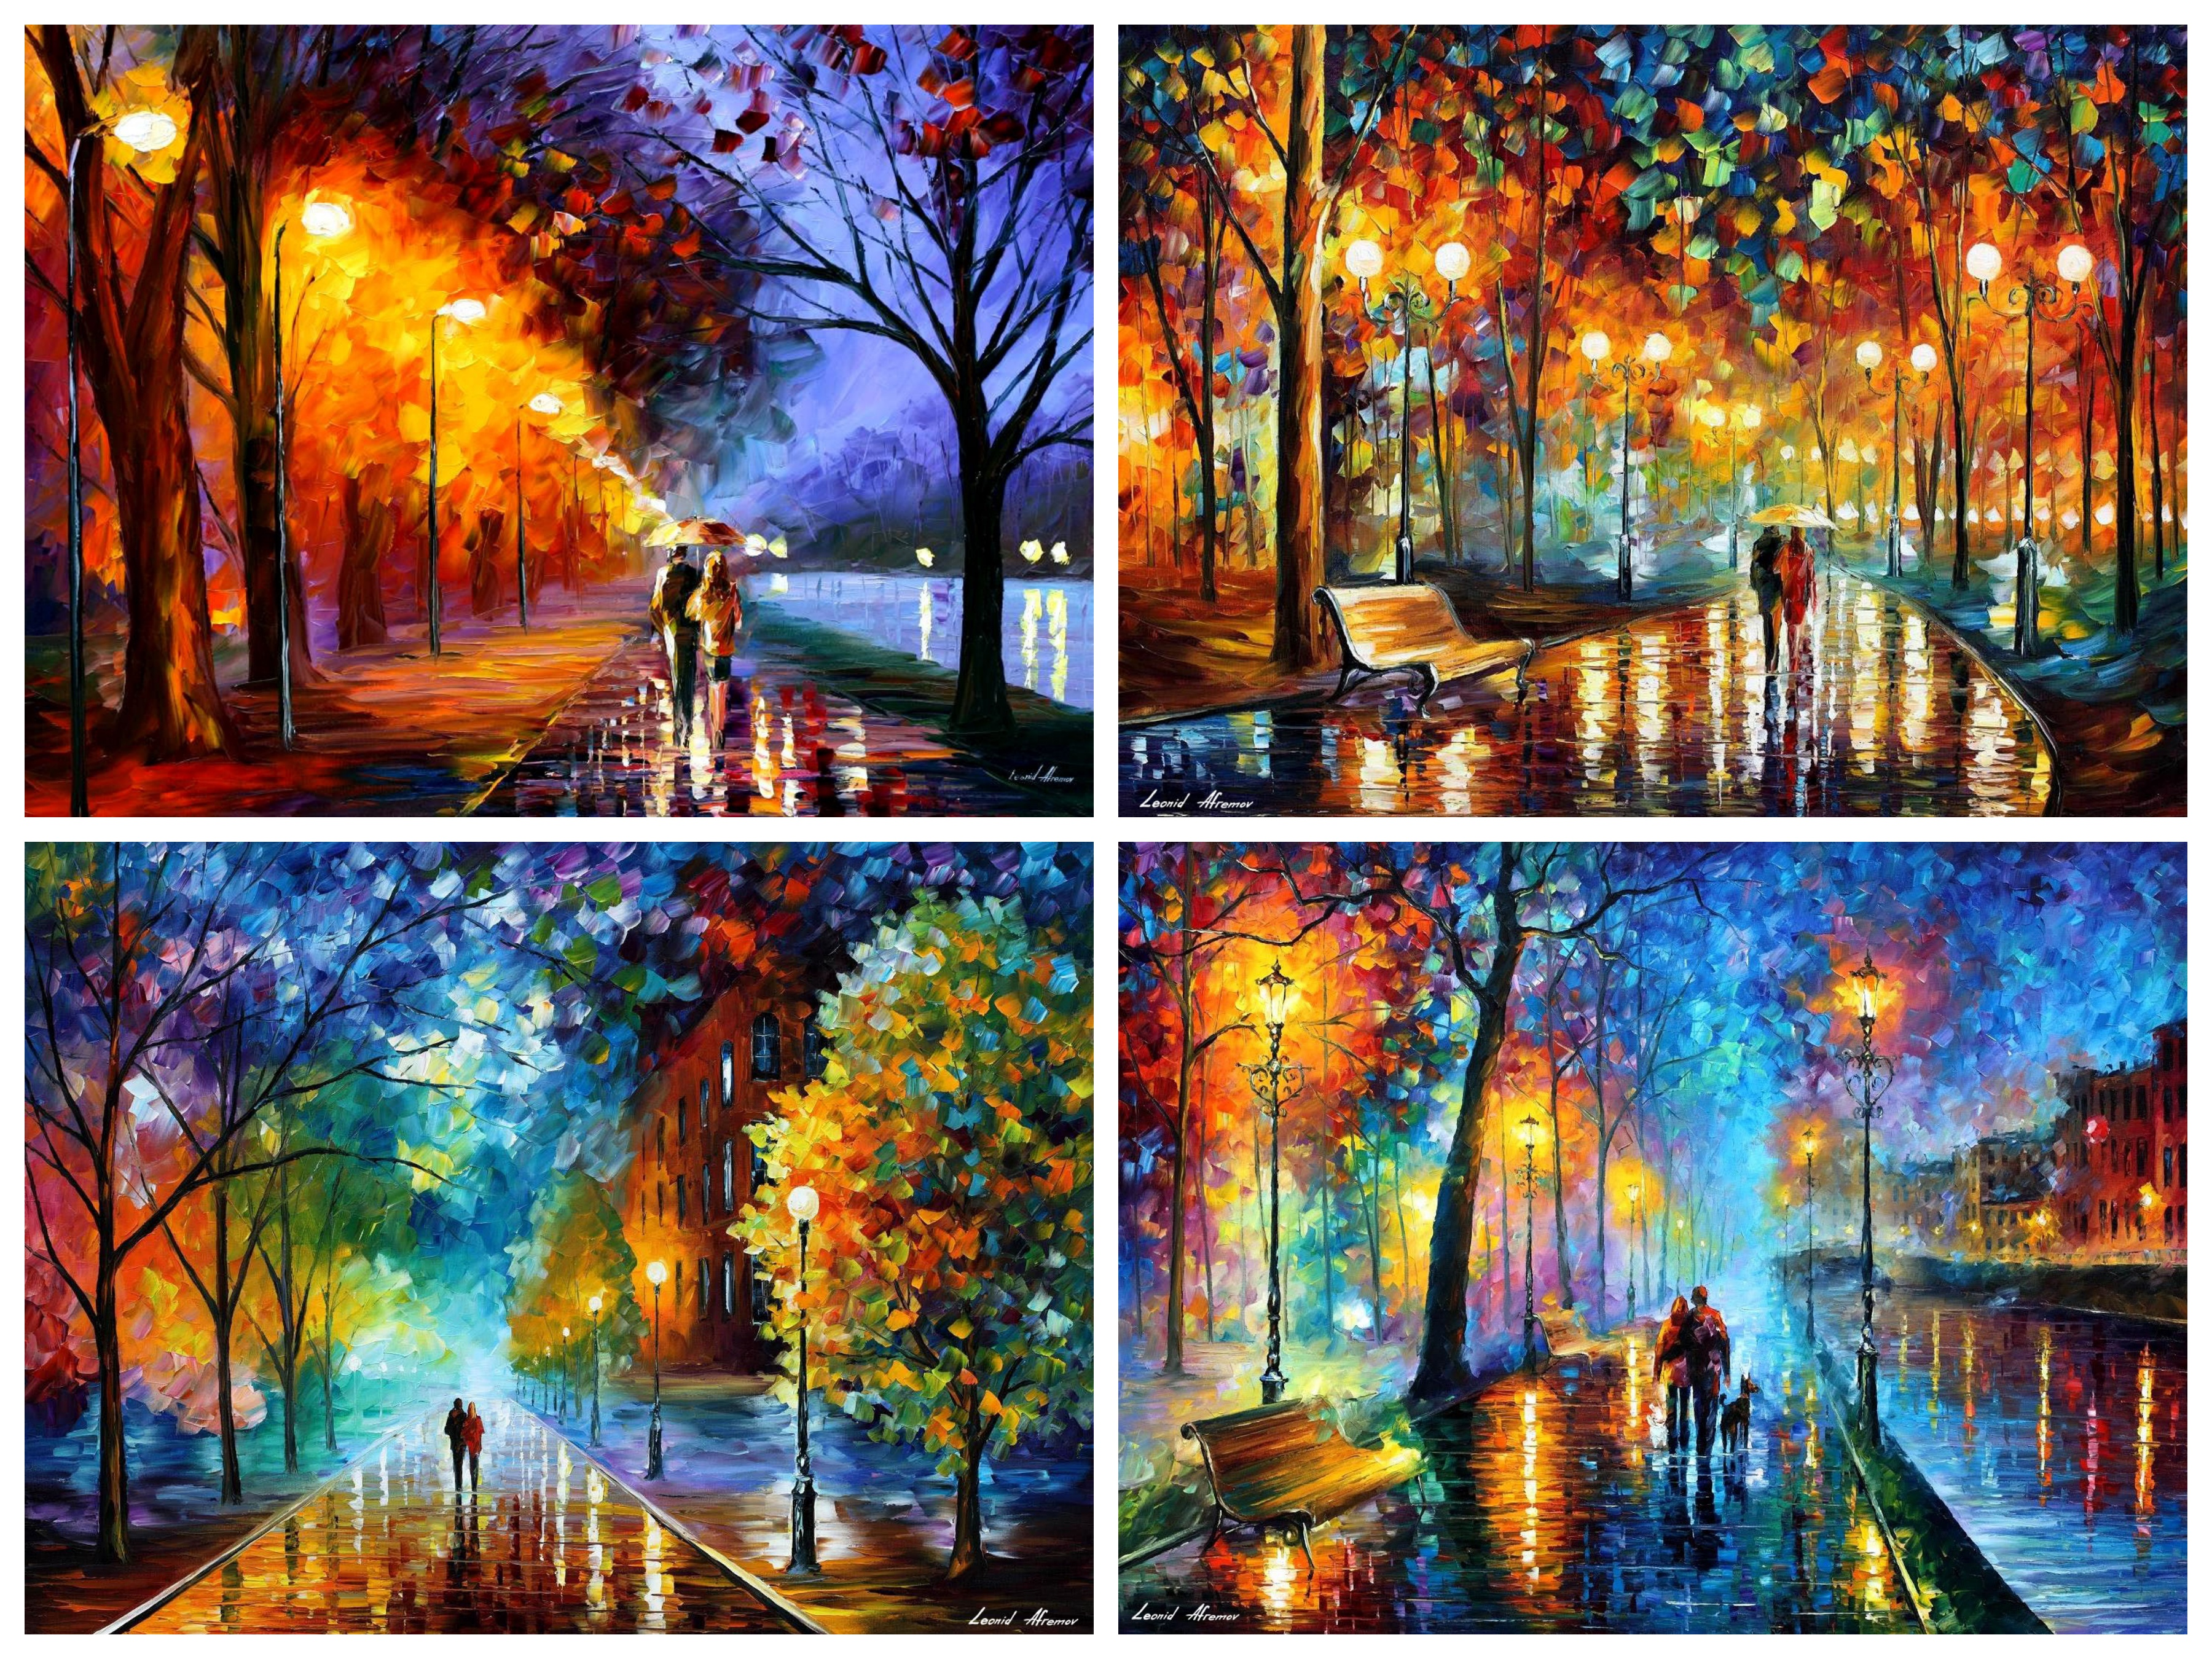 Set Of 4 My Most Favourite Artworks (Melody Of The Night, Alley By The Lake, Rain's Rustle, Freshness Of Cold)